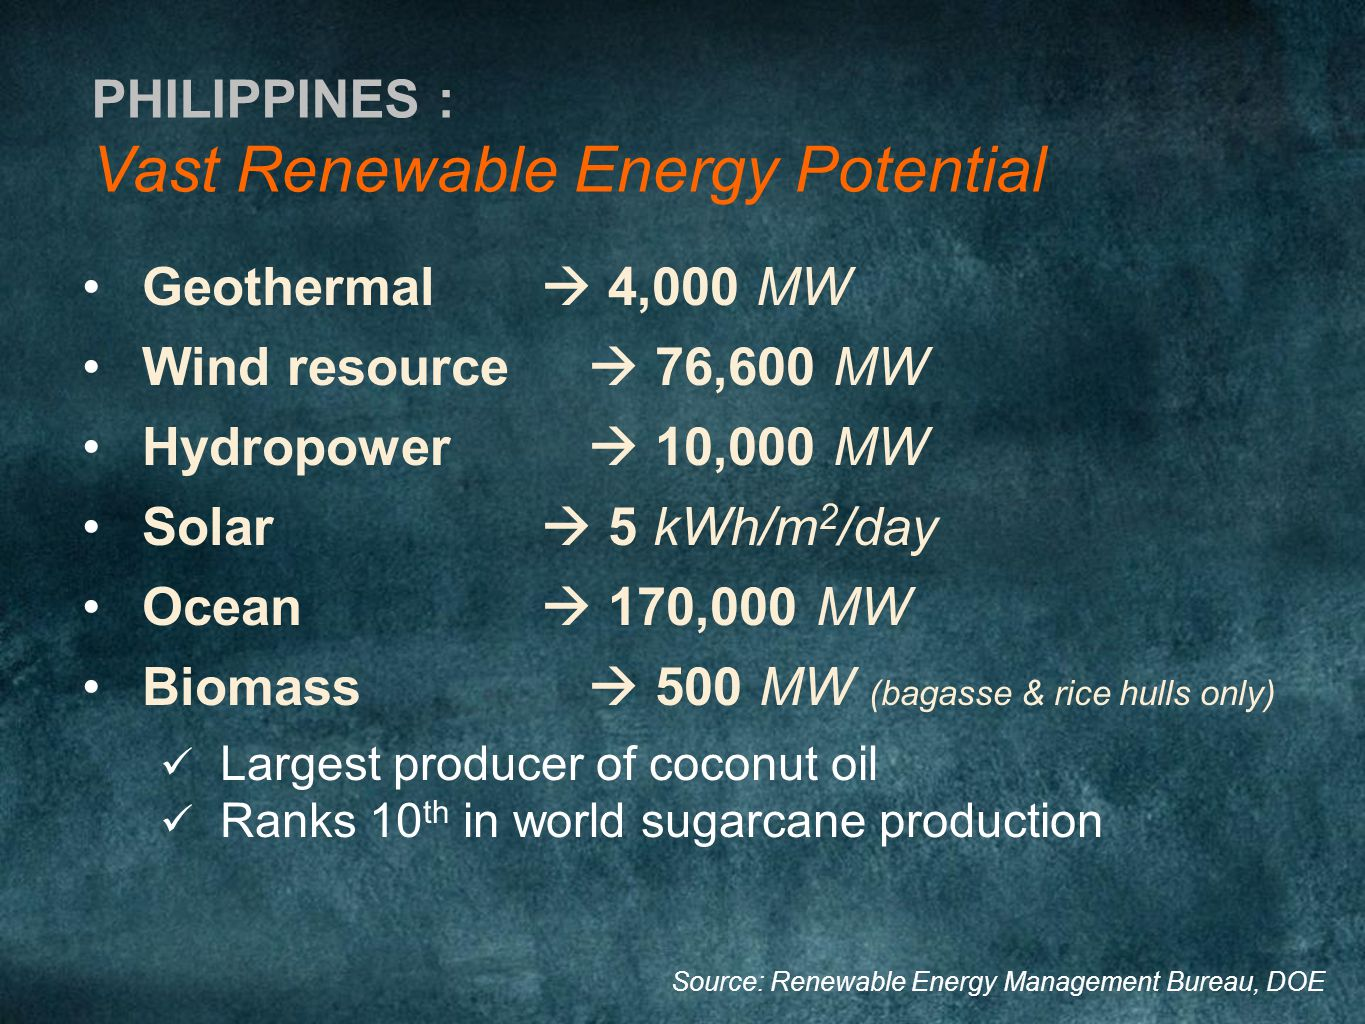 Vast Renewable Energy Potential